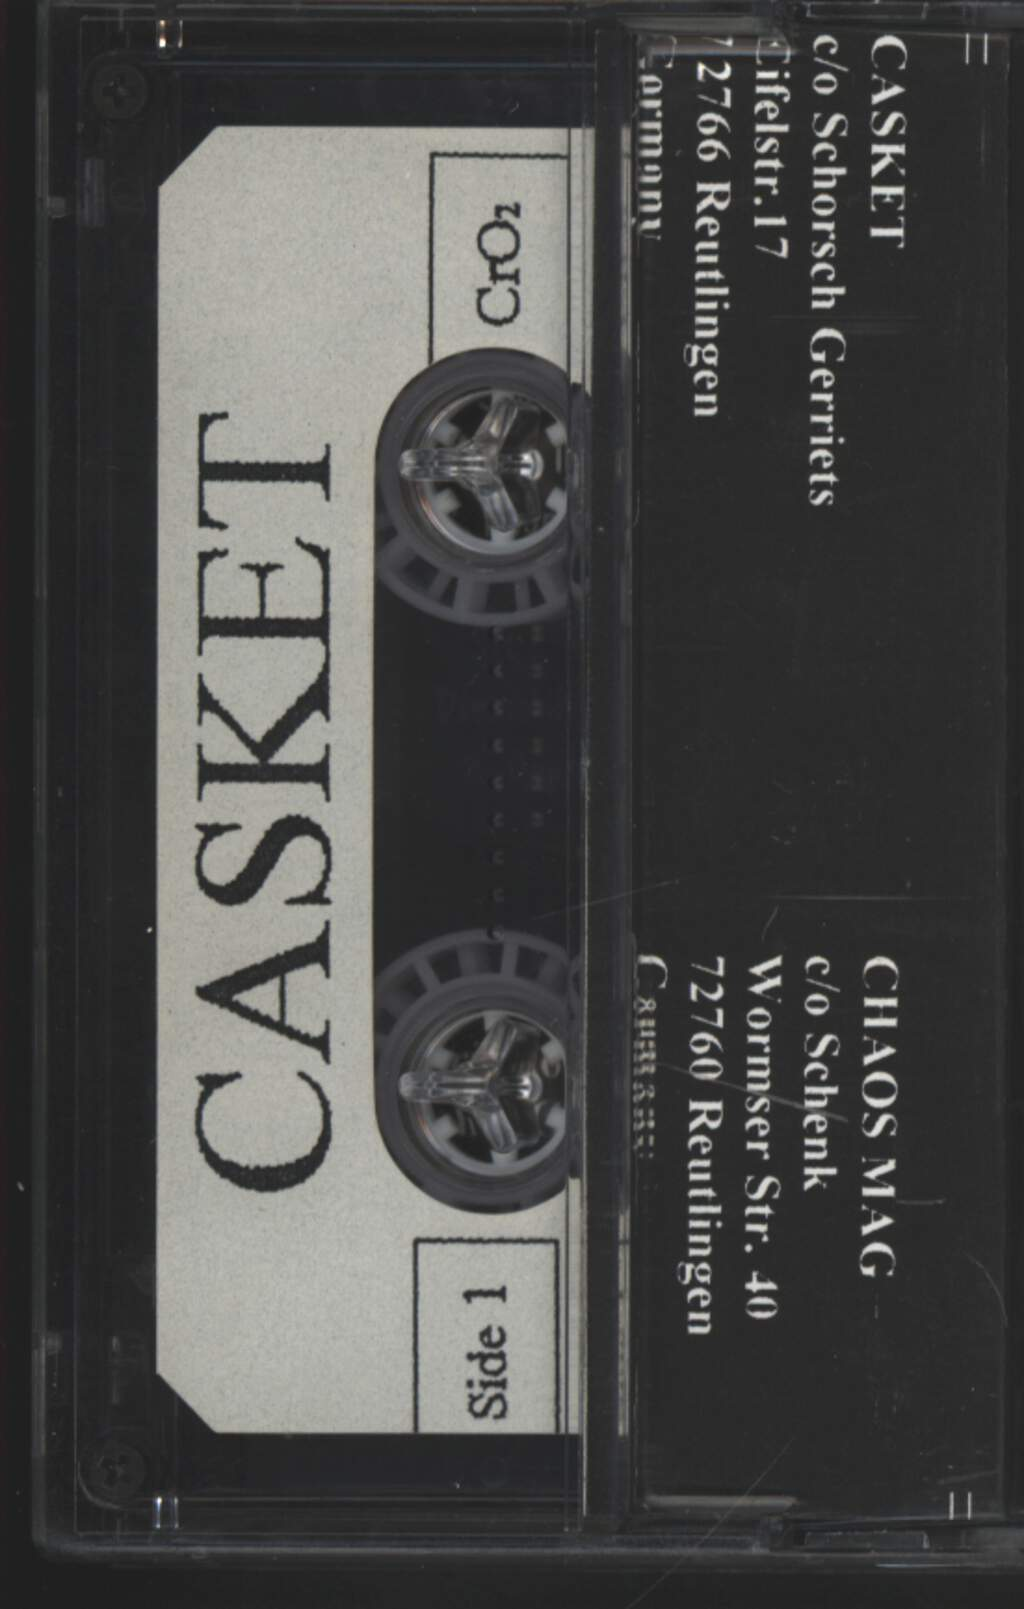 Casket: Meant To Be Dead, Compact Cassette